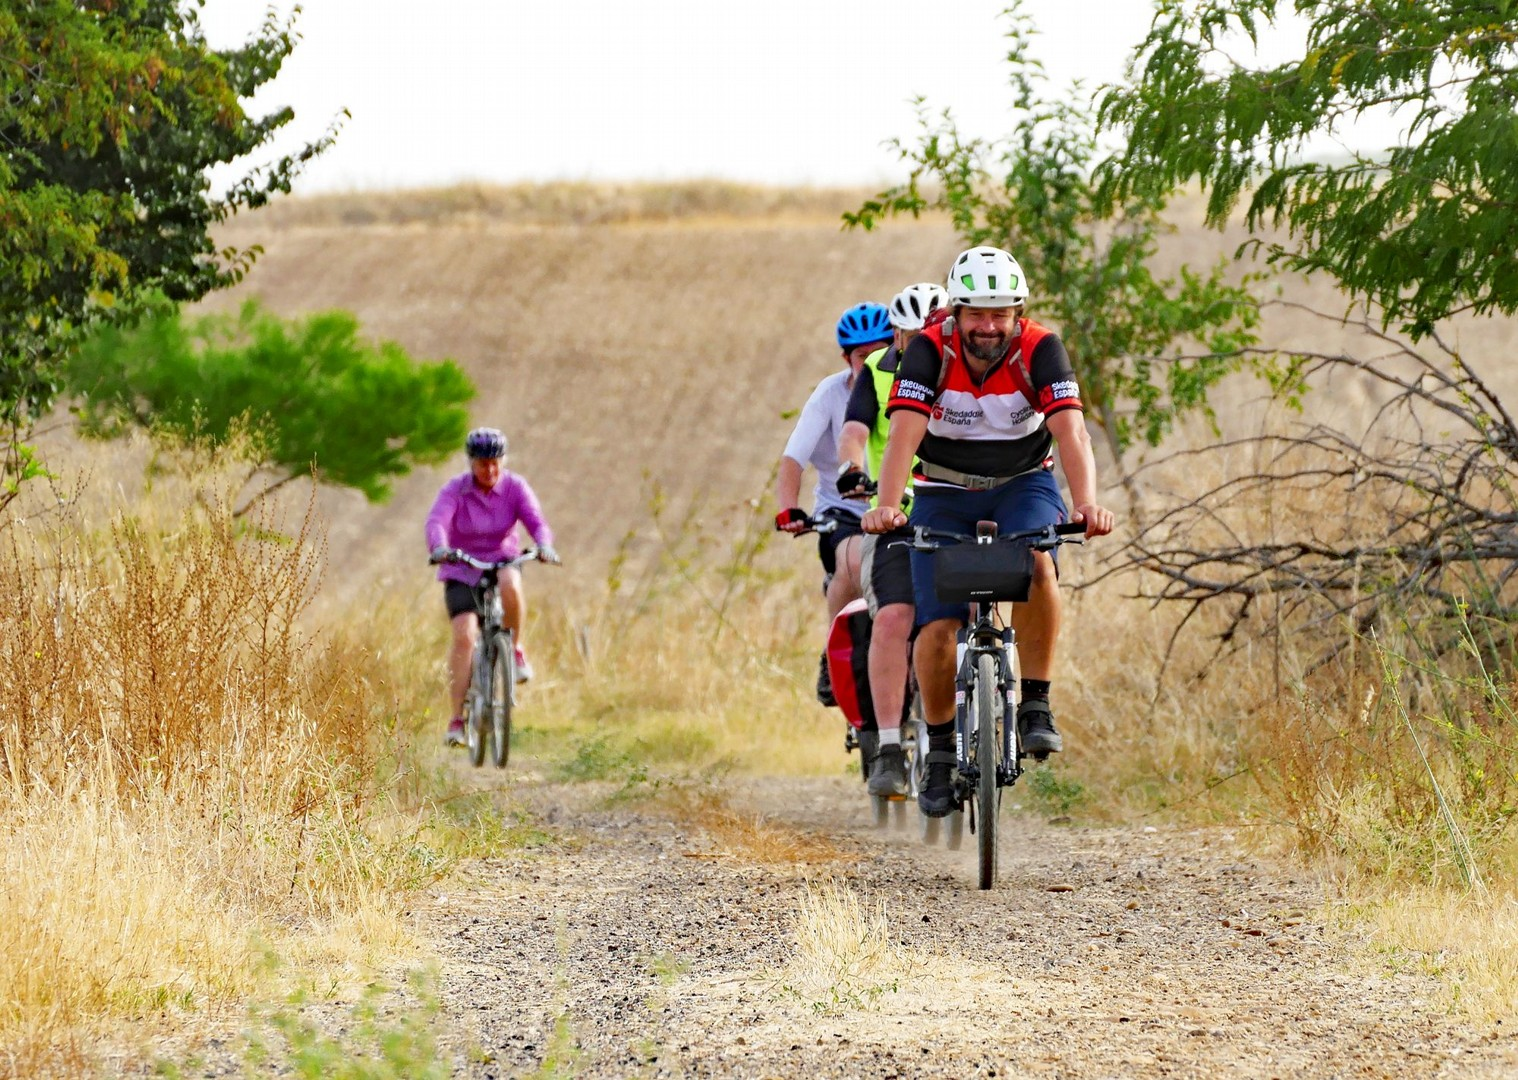 guided-leisure-cycling-holiday-southern-spain-granada-to-seville.jpg - Southern Spain - Granada to Seville - Guided Leisure Cycling Holiday - Leisure Cycling